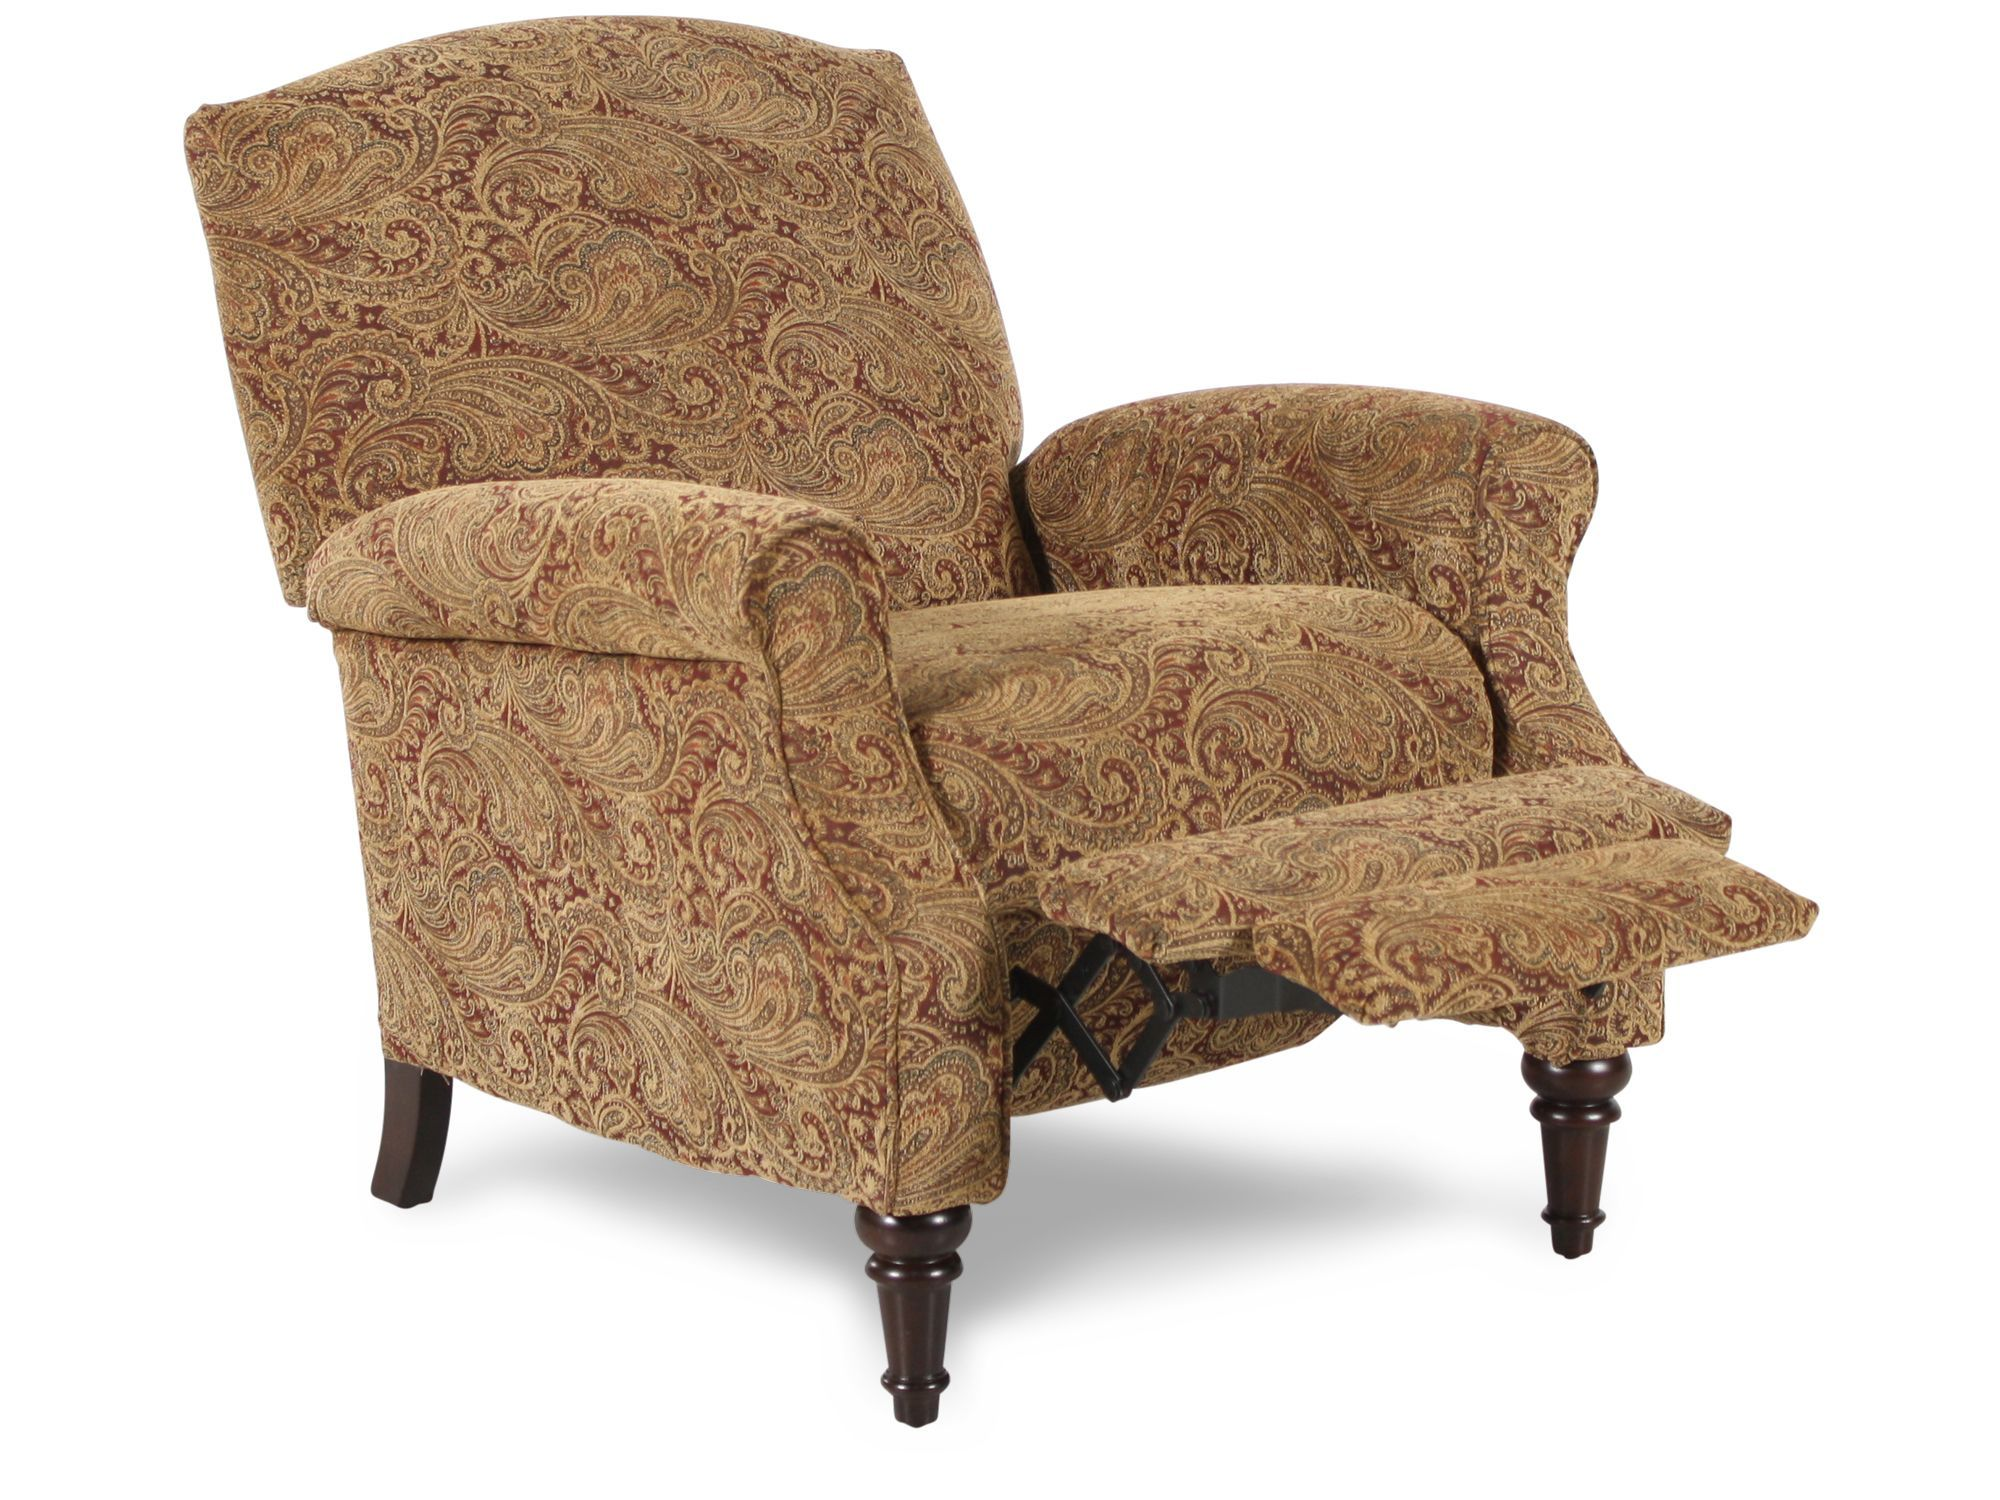 Lane Chloe Classic High Leg Recliner | Mathis Brothers Furniture  sc 1 st  Pinterest : mathis brothers furniture recliners - islam-shia.org